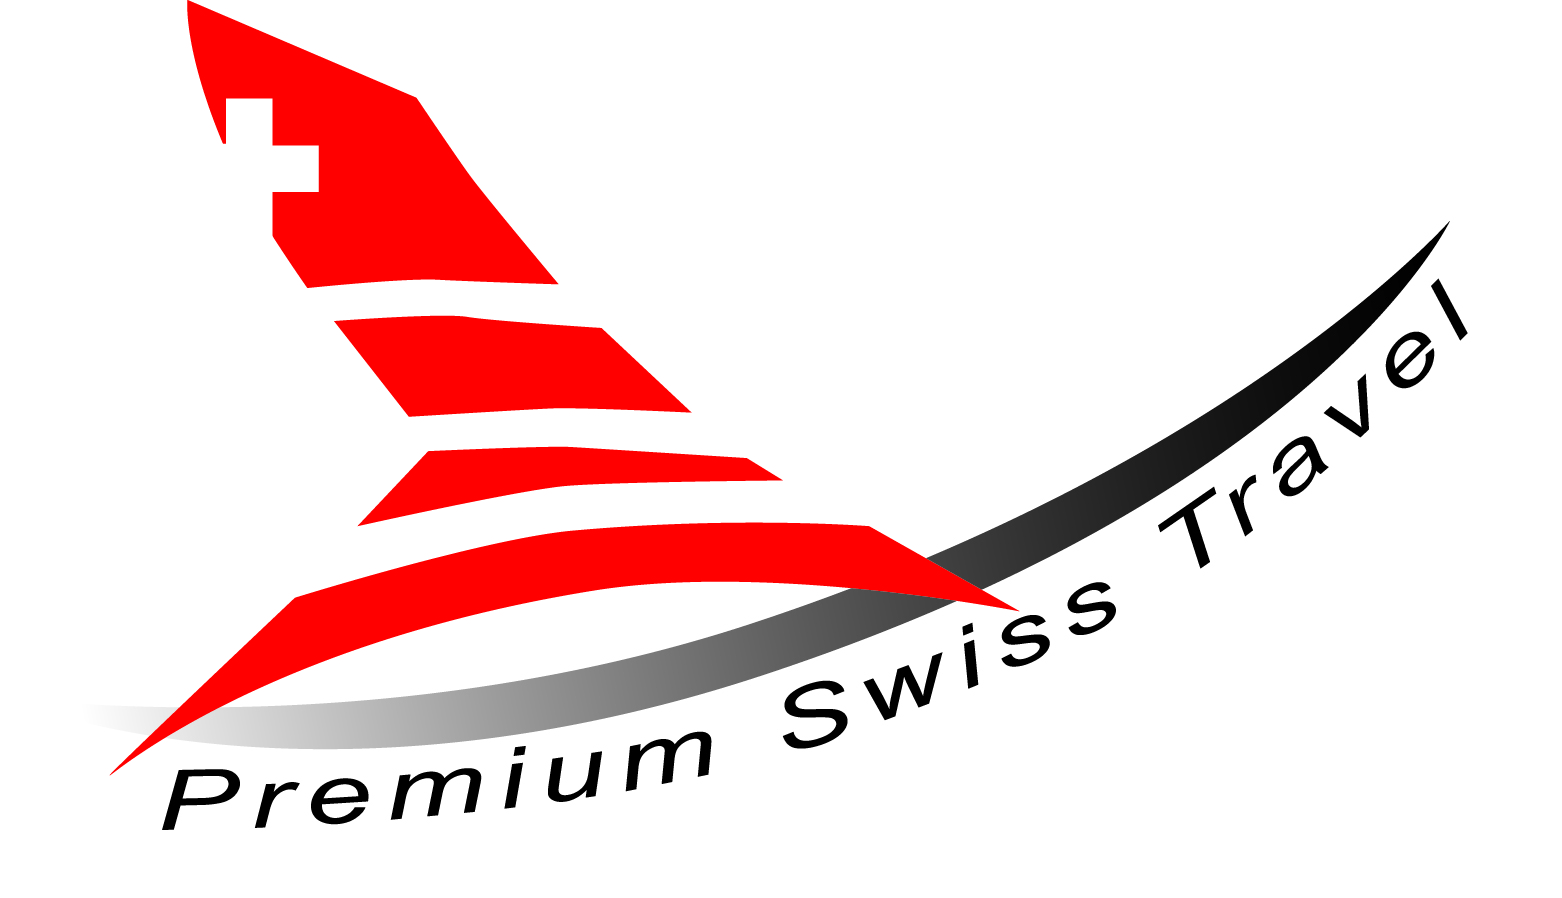 Premium Swiss Travel | Price per cabin Archives - Premium Swiss Travel